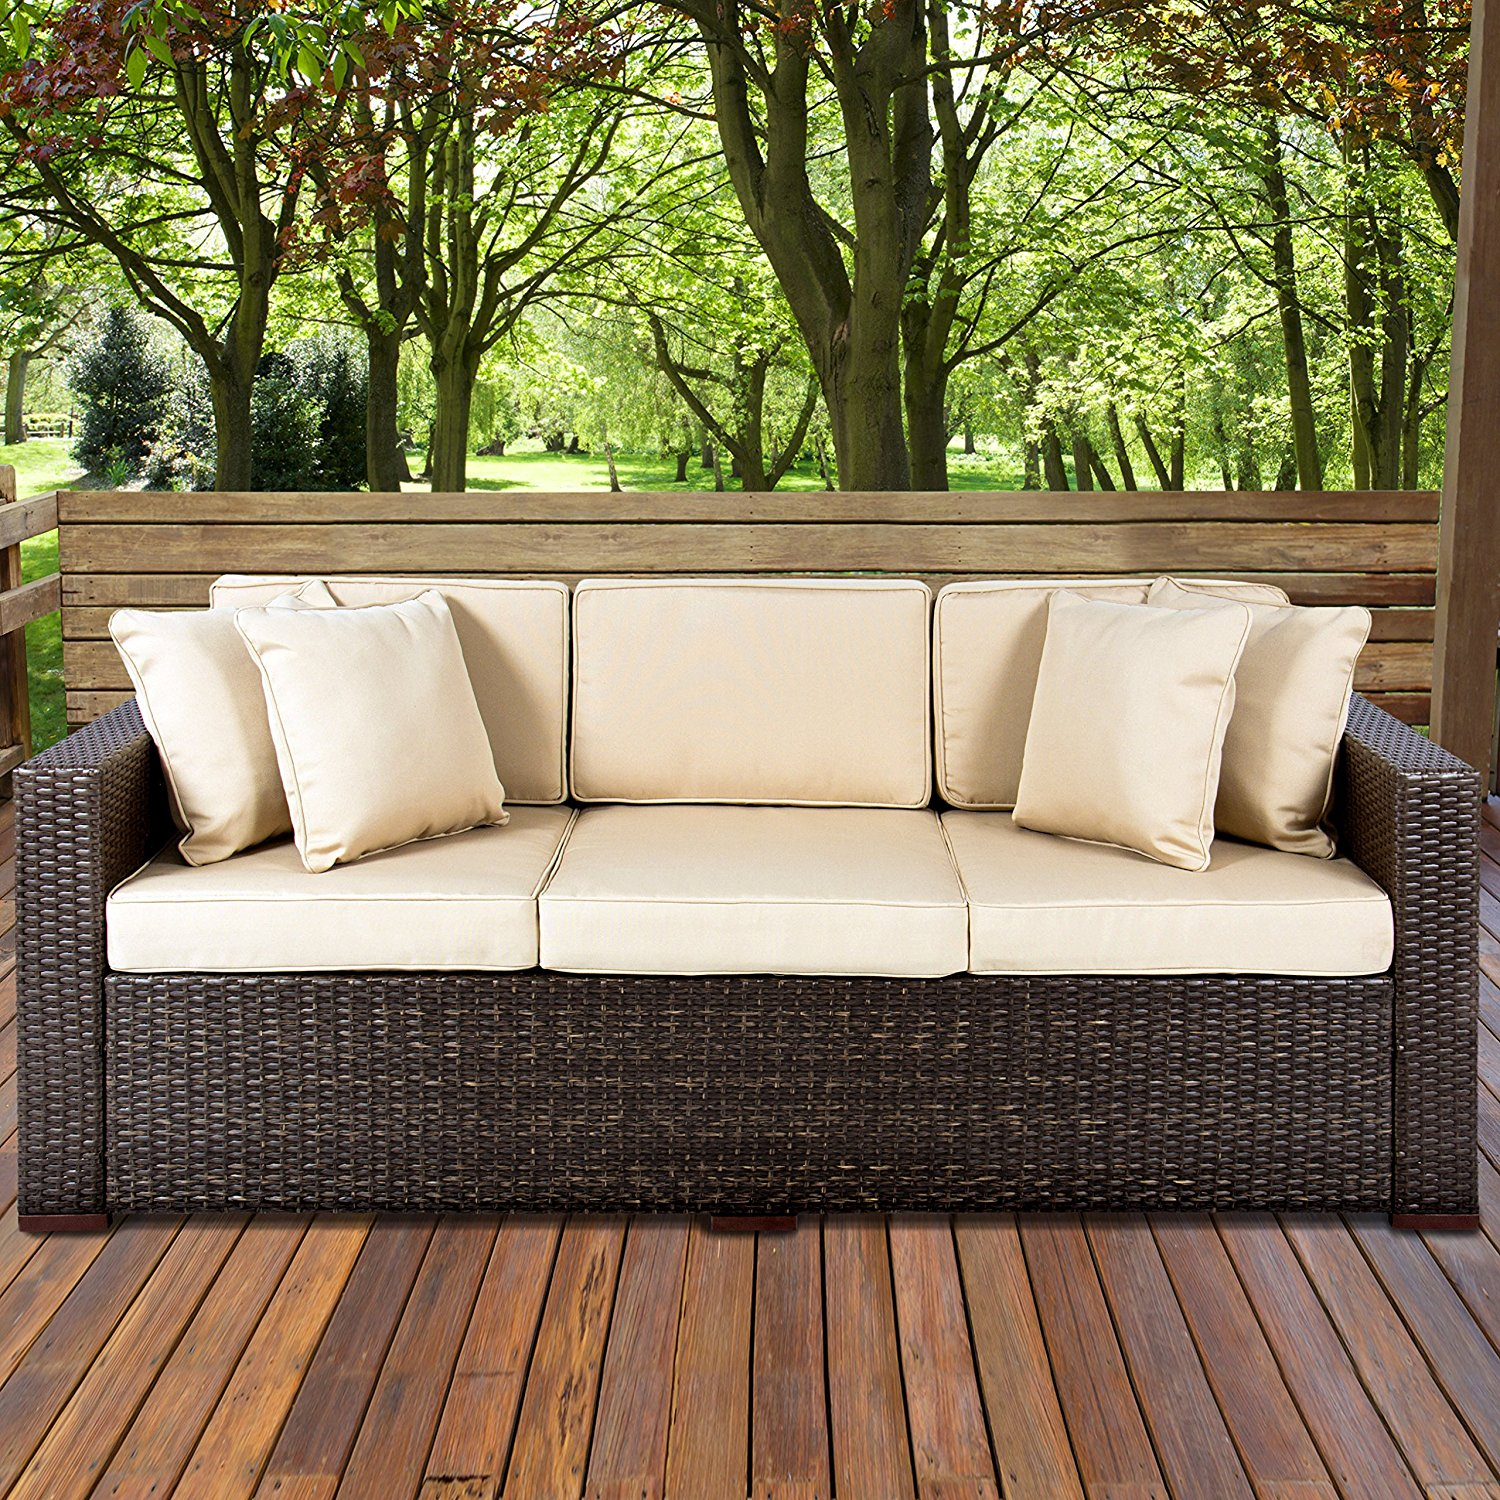 Top 10 Best Patio Sofas in 2019  Top Best Pro Review